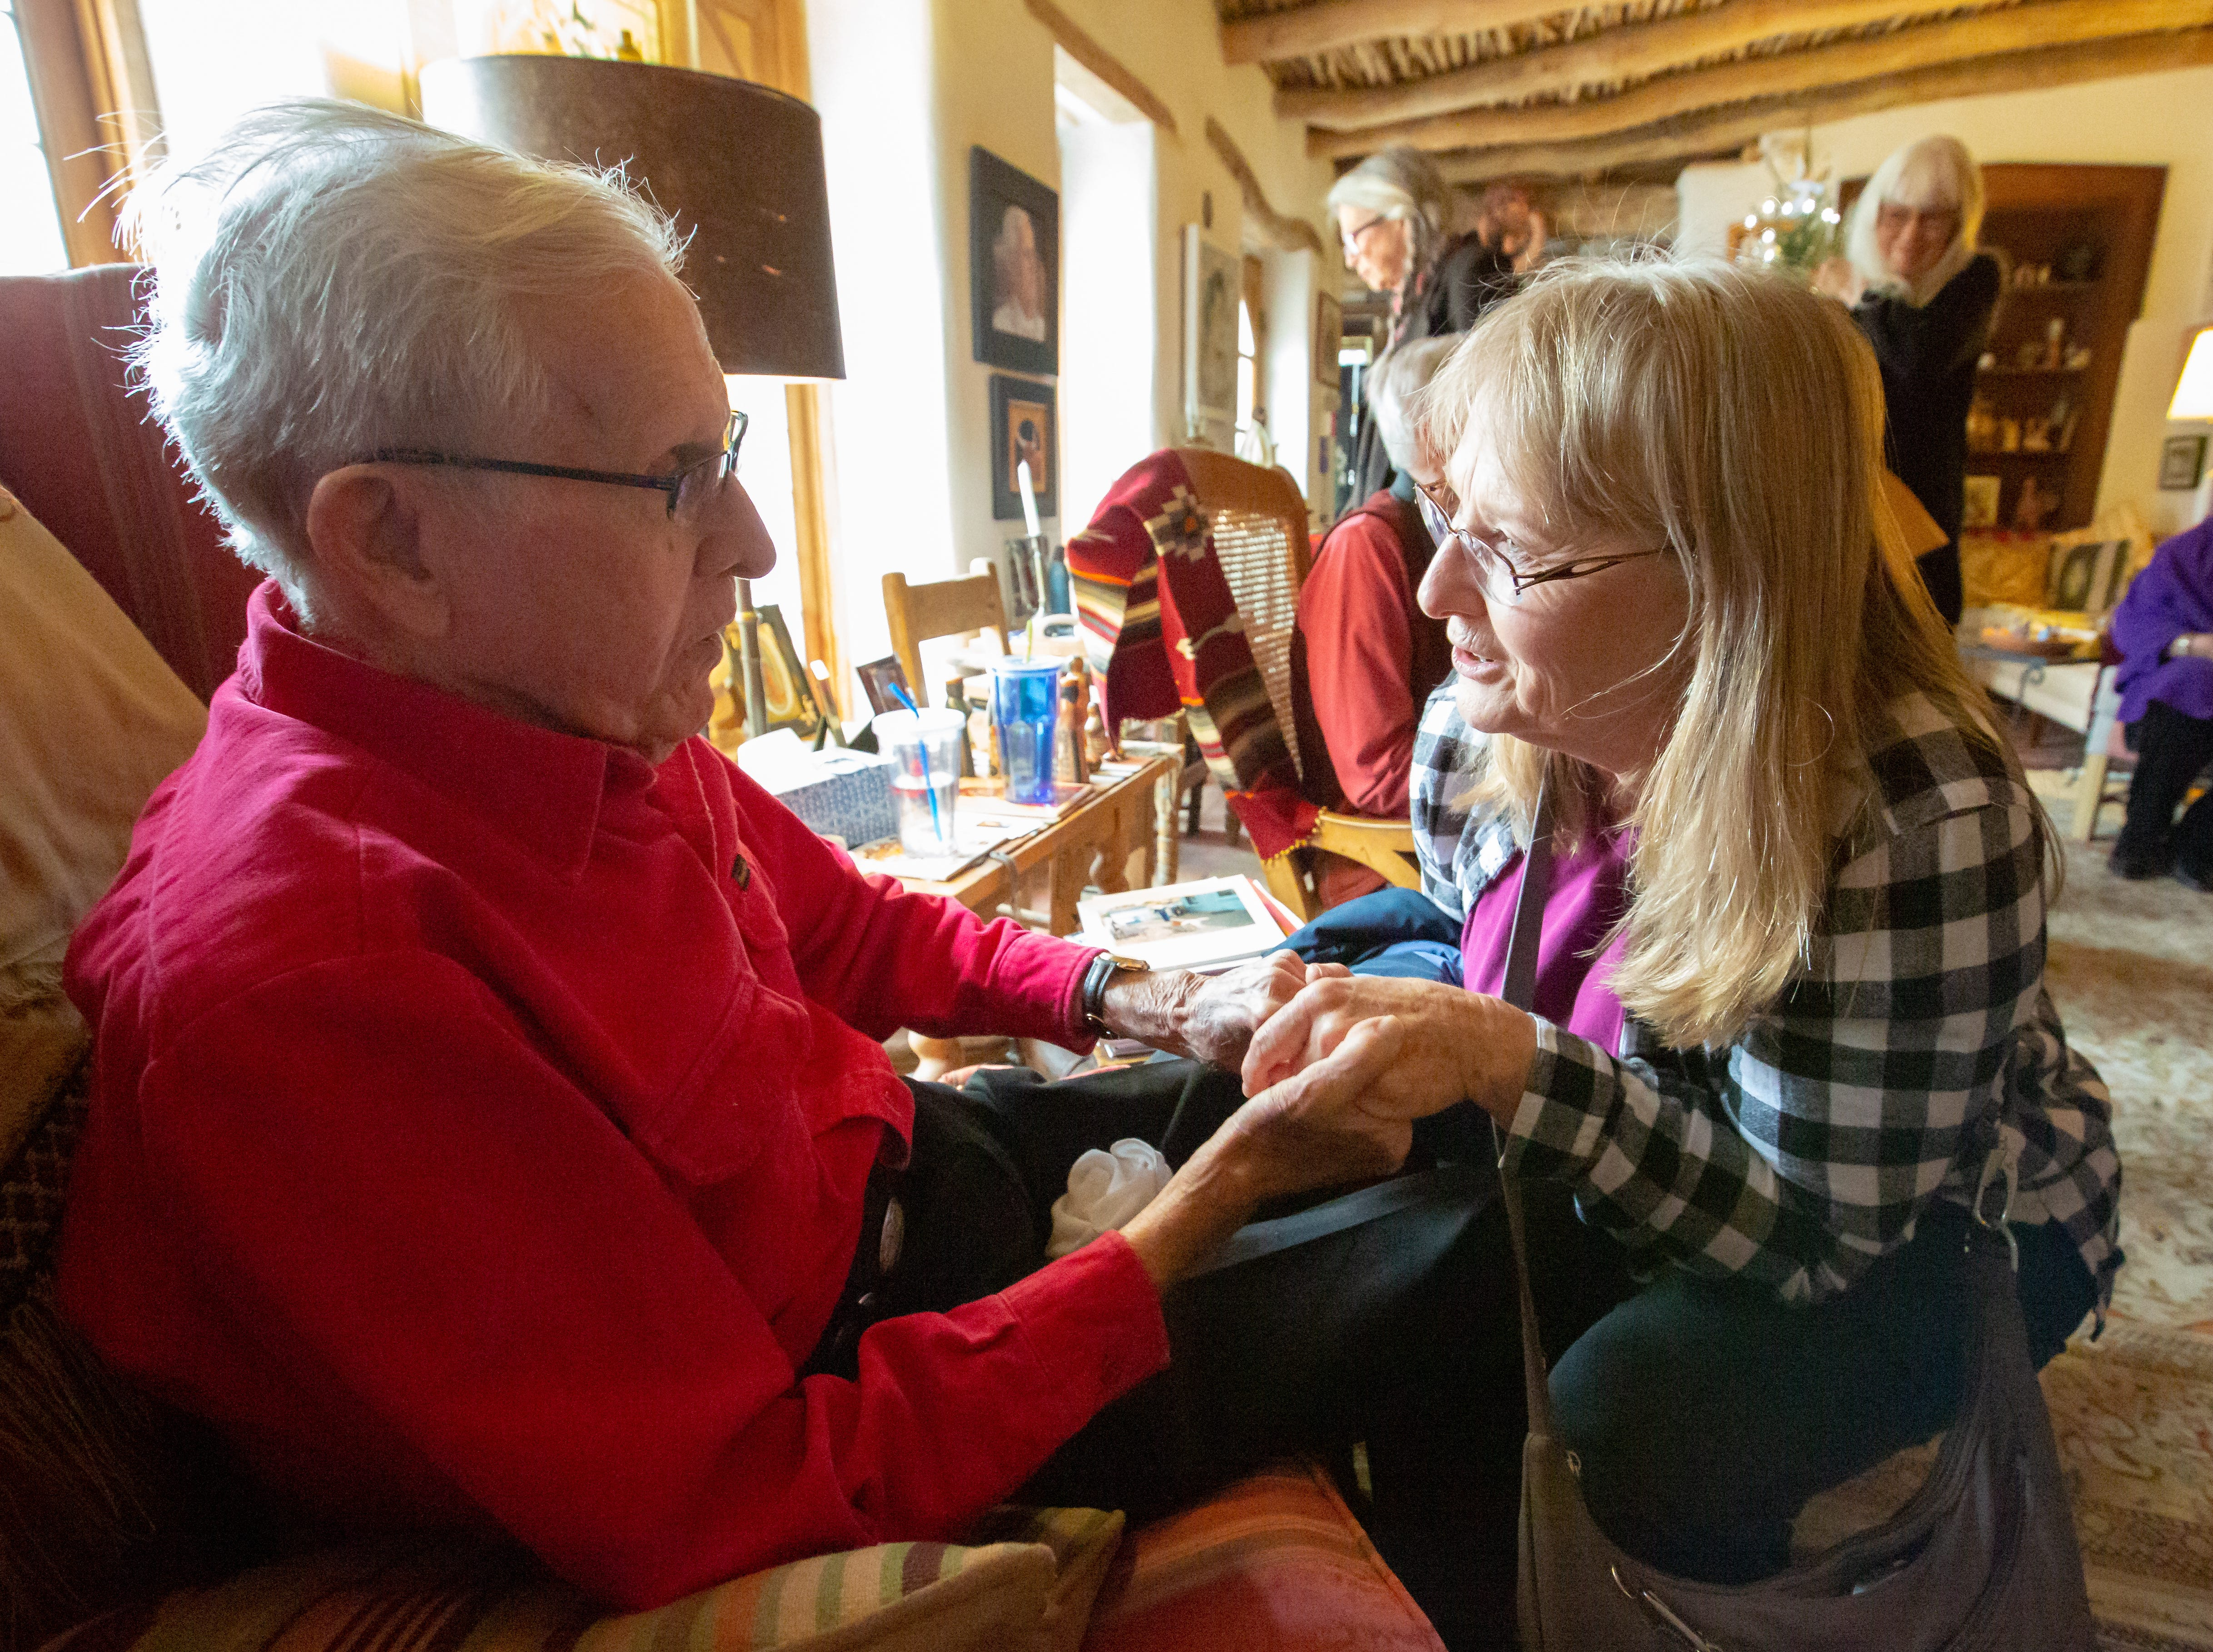 J. Paul Taylor is visited by Mary Andrews, of Las Cruces, on Sunday, December 16, 2018, during Nacimiento Open House with J. Paul Taylor at the Taylor-Barela-Reynolds-Mesilla Historic Site located in the Mesilla Plaza. Over 175 nacimientos (nativity scenes) were on display from around the world.